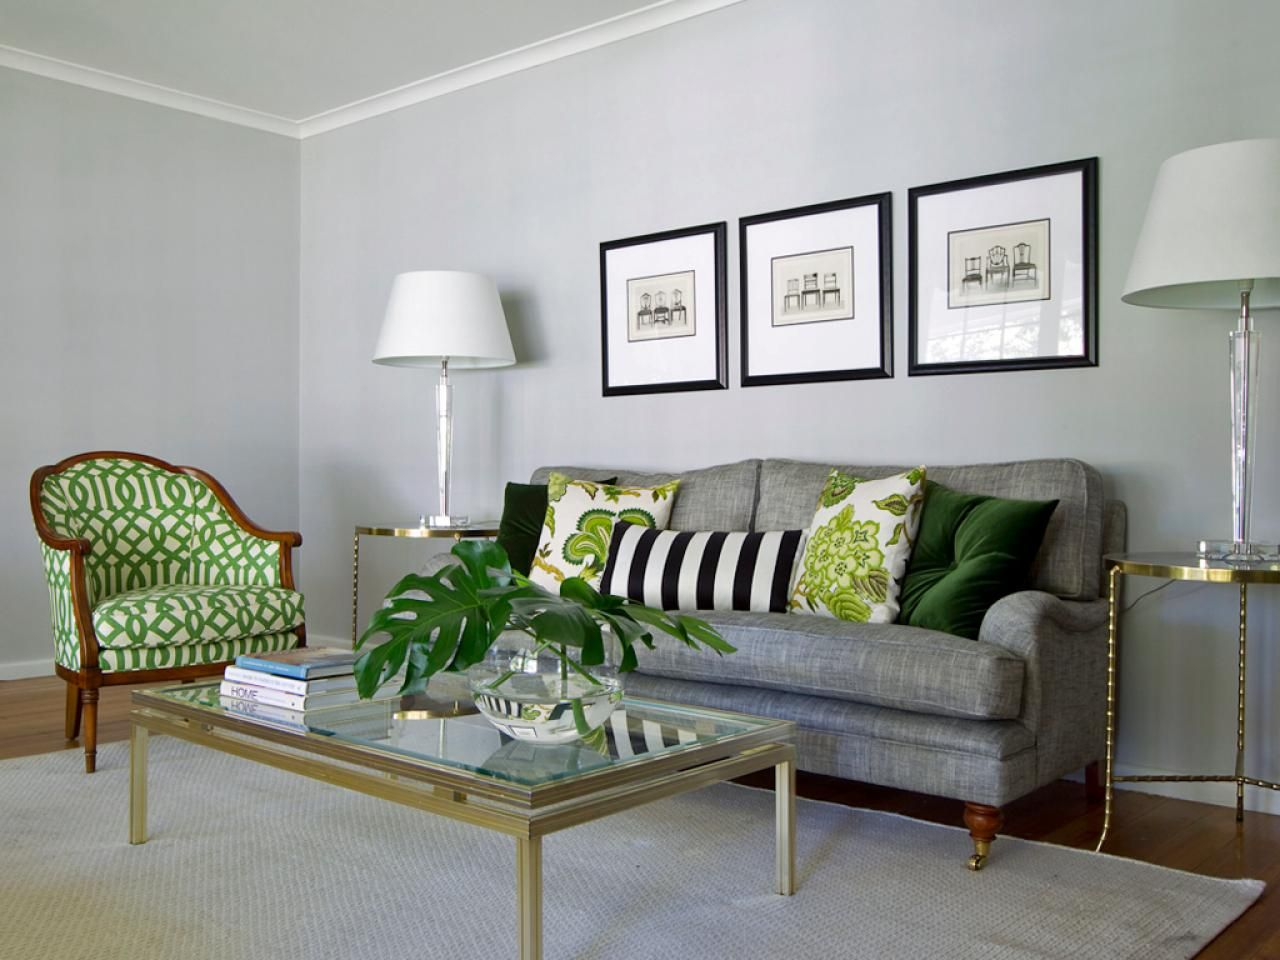 Vibrant Green And Gray Living Rooms Ideas | Home decor ...